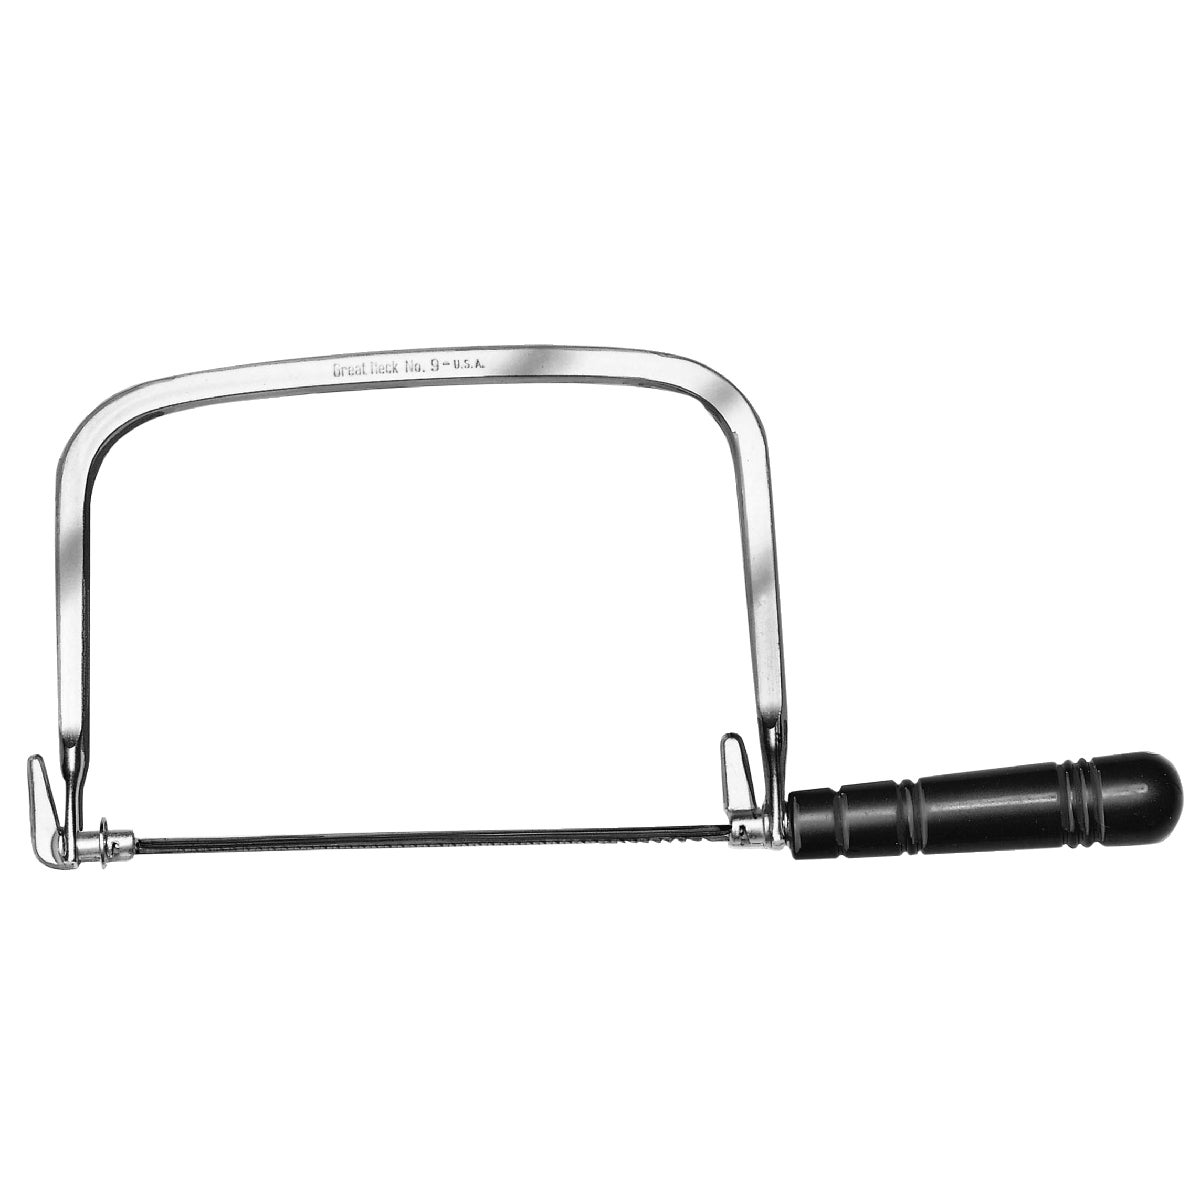 PLASTIC COPING SAW